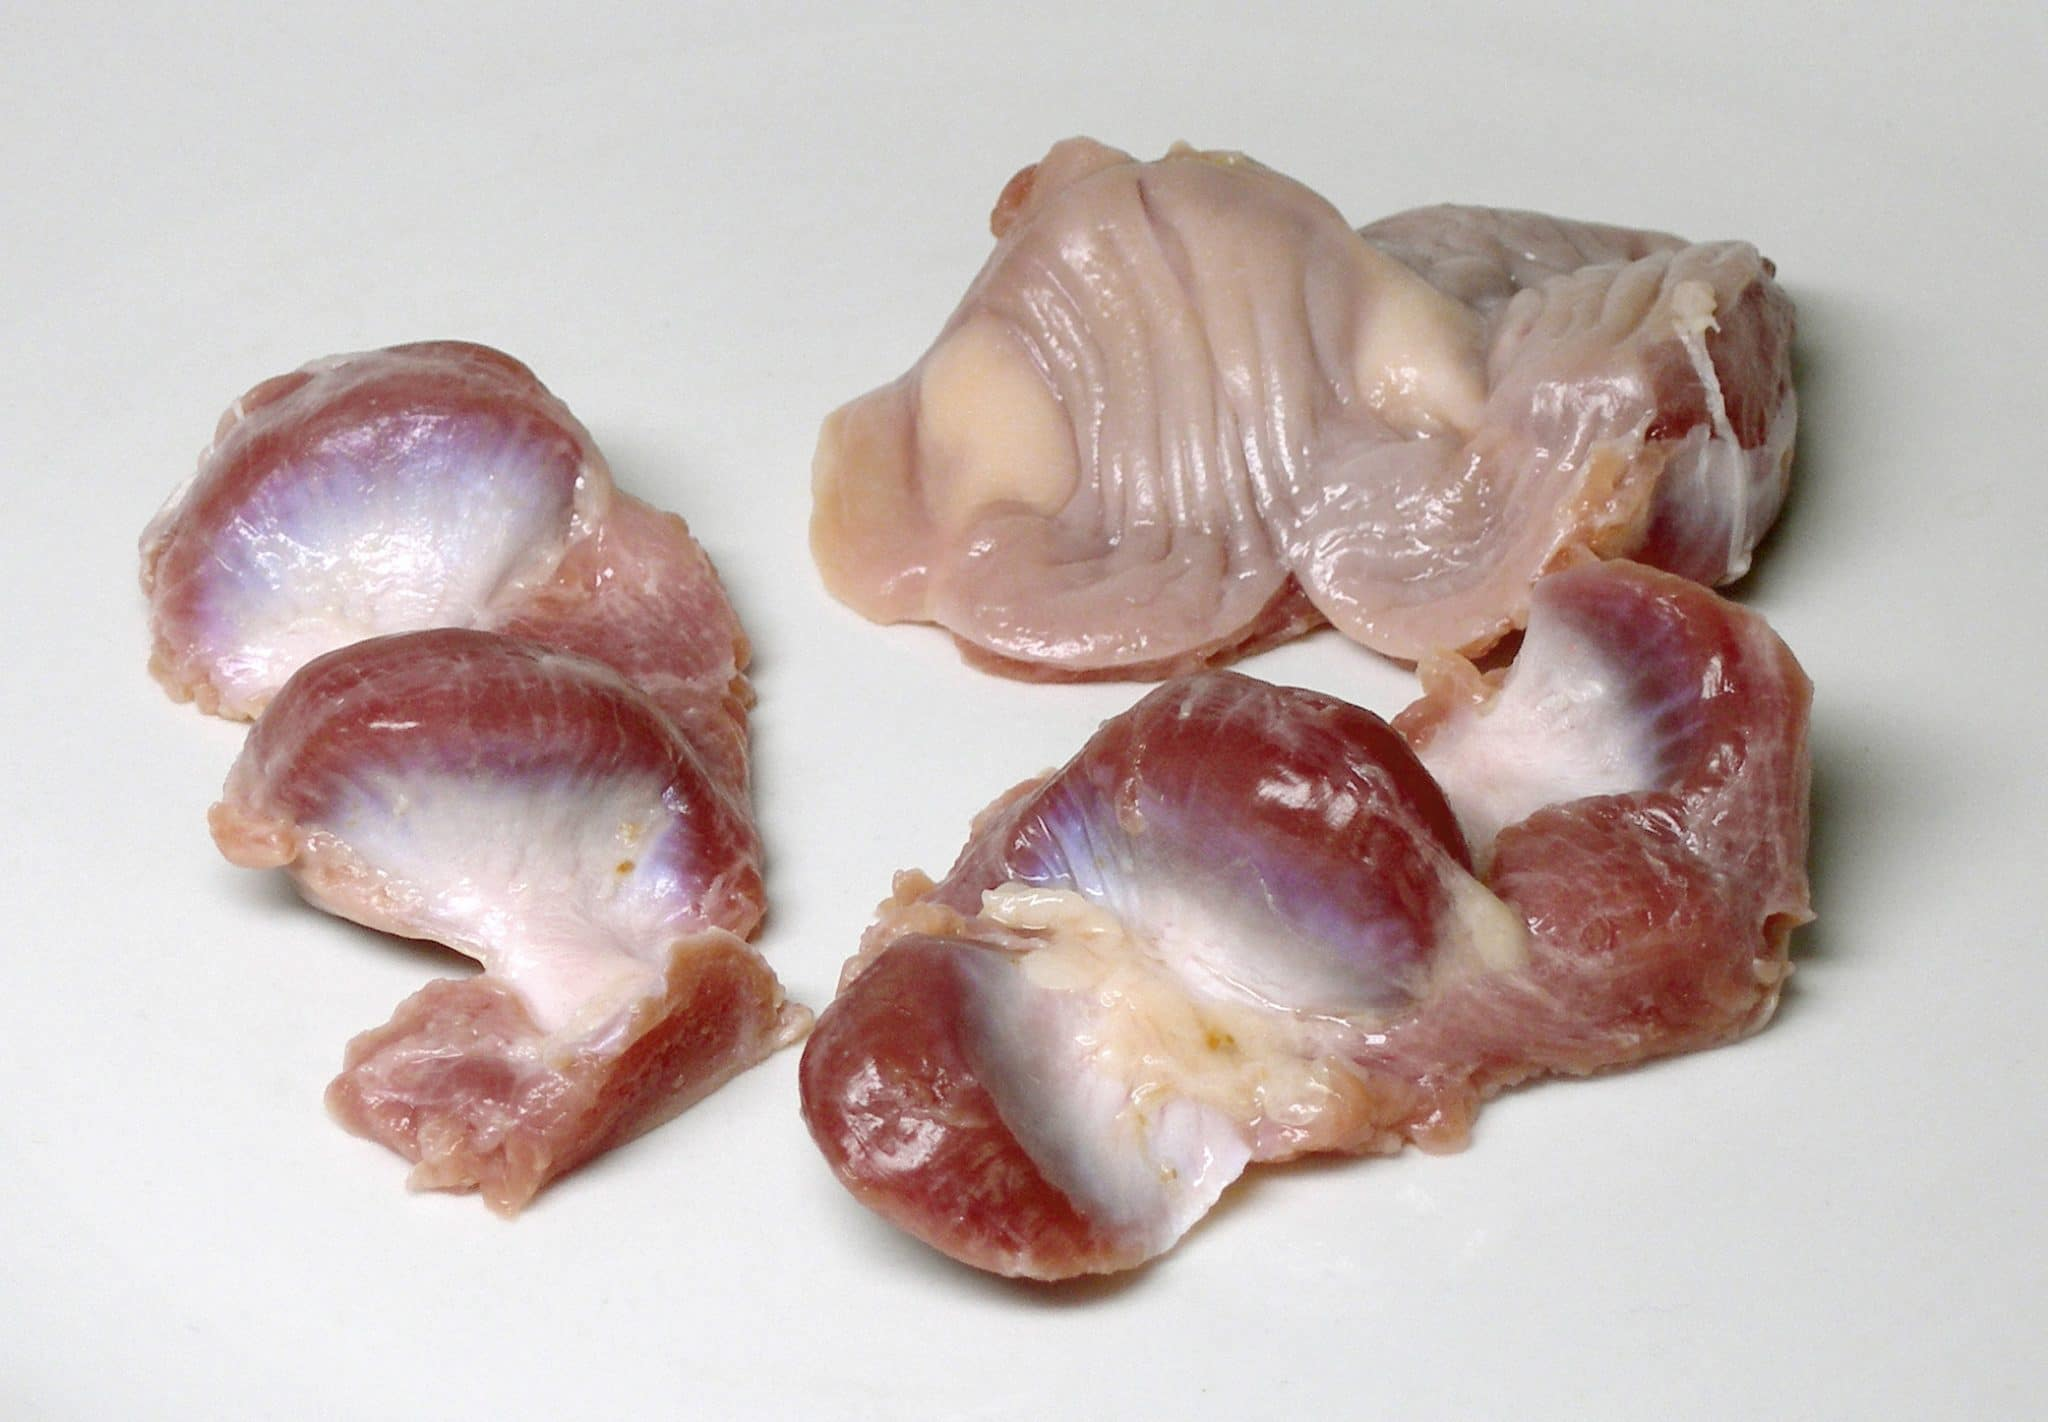 poultry stomach, cooking chitlins